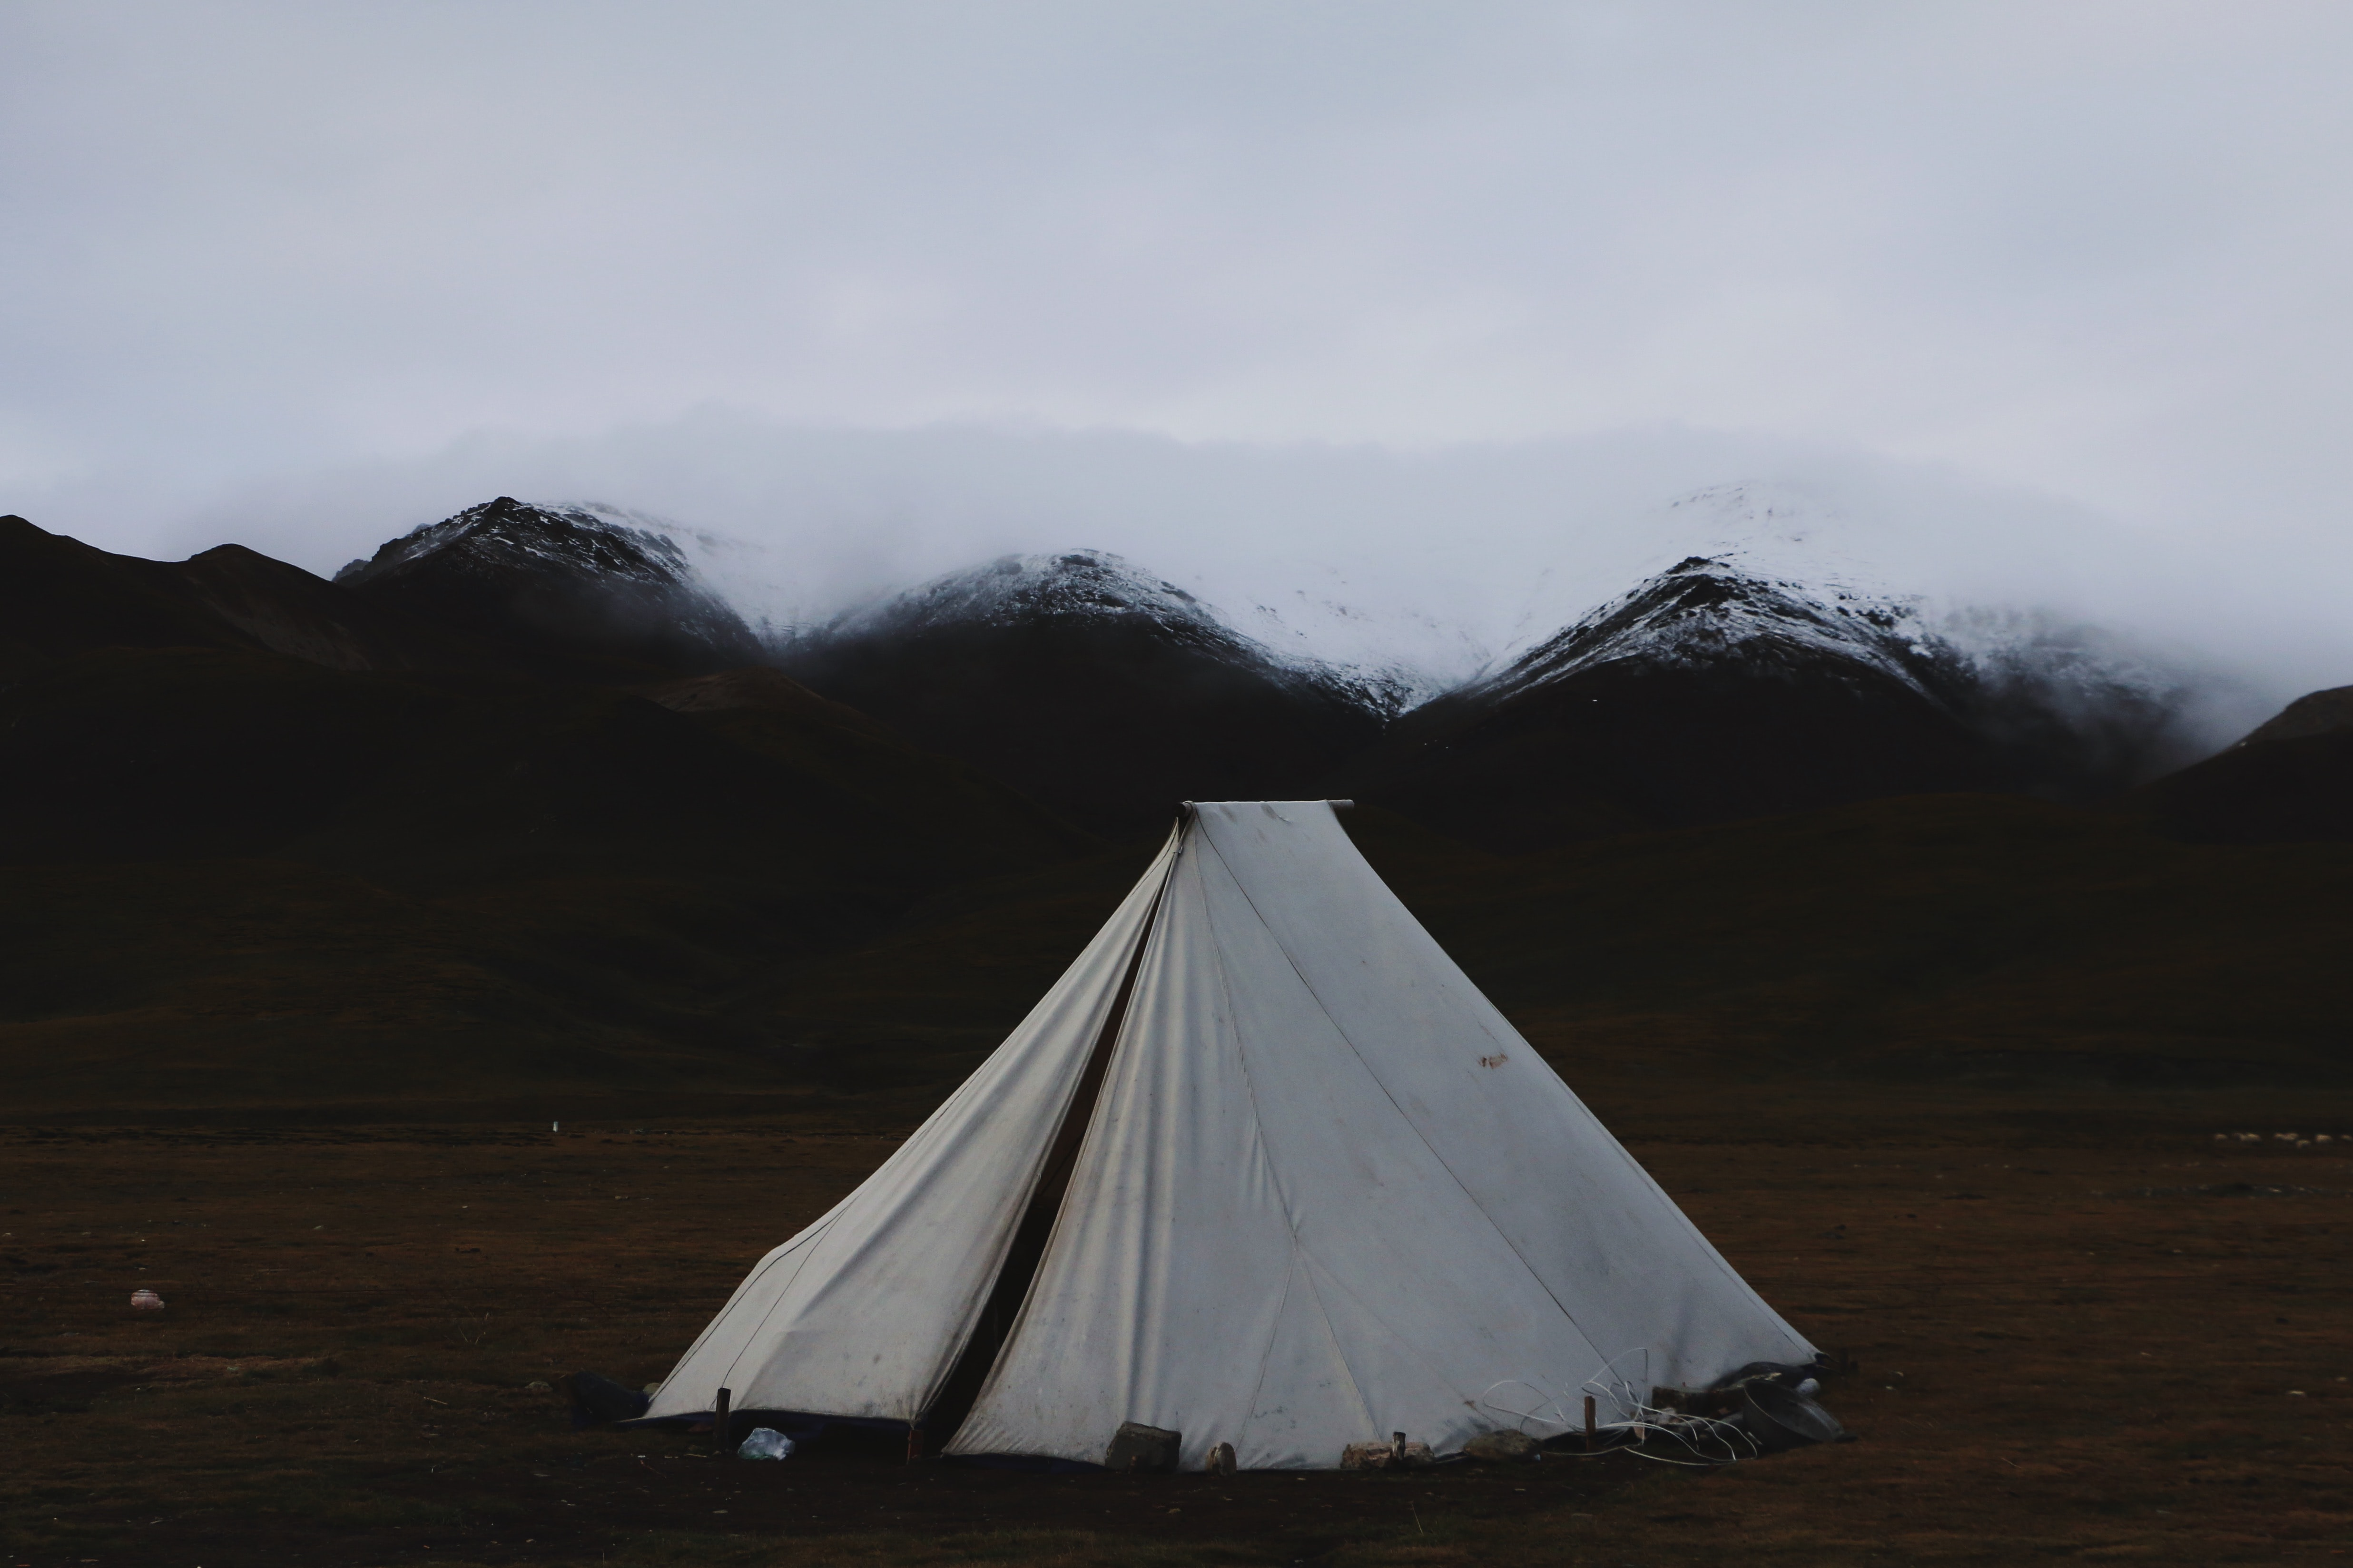 White tent set up in the grass with snowy mountains in the background